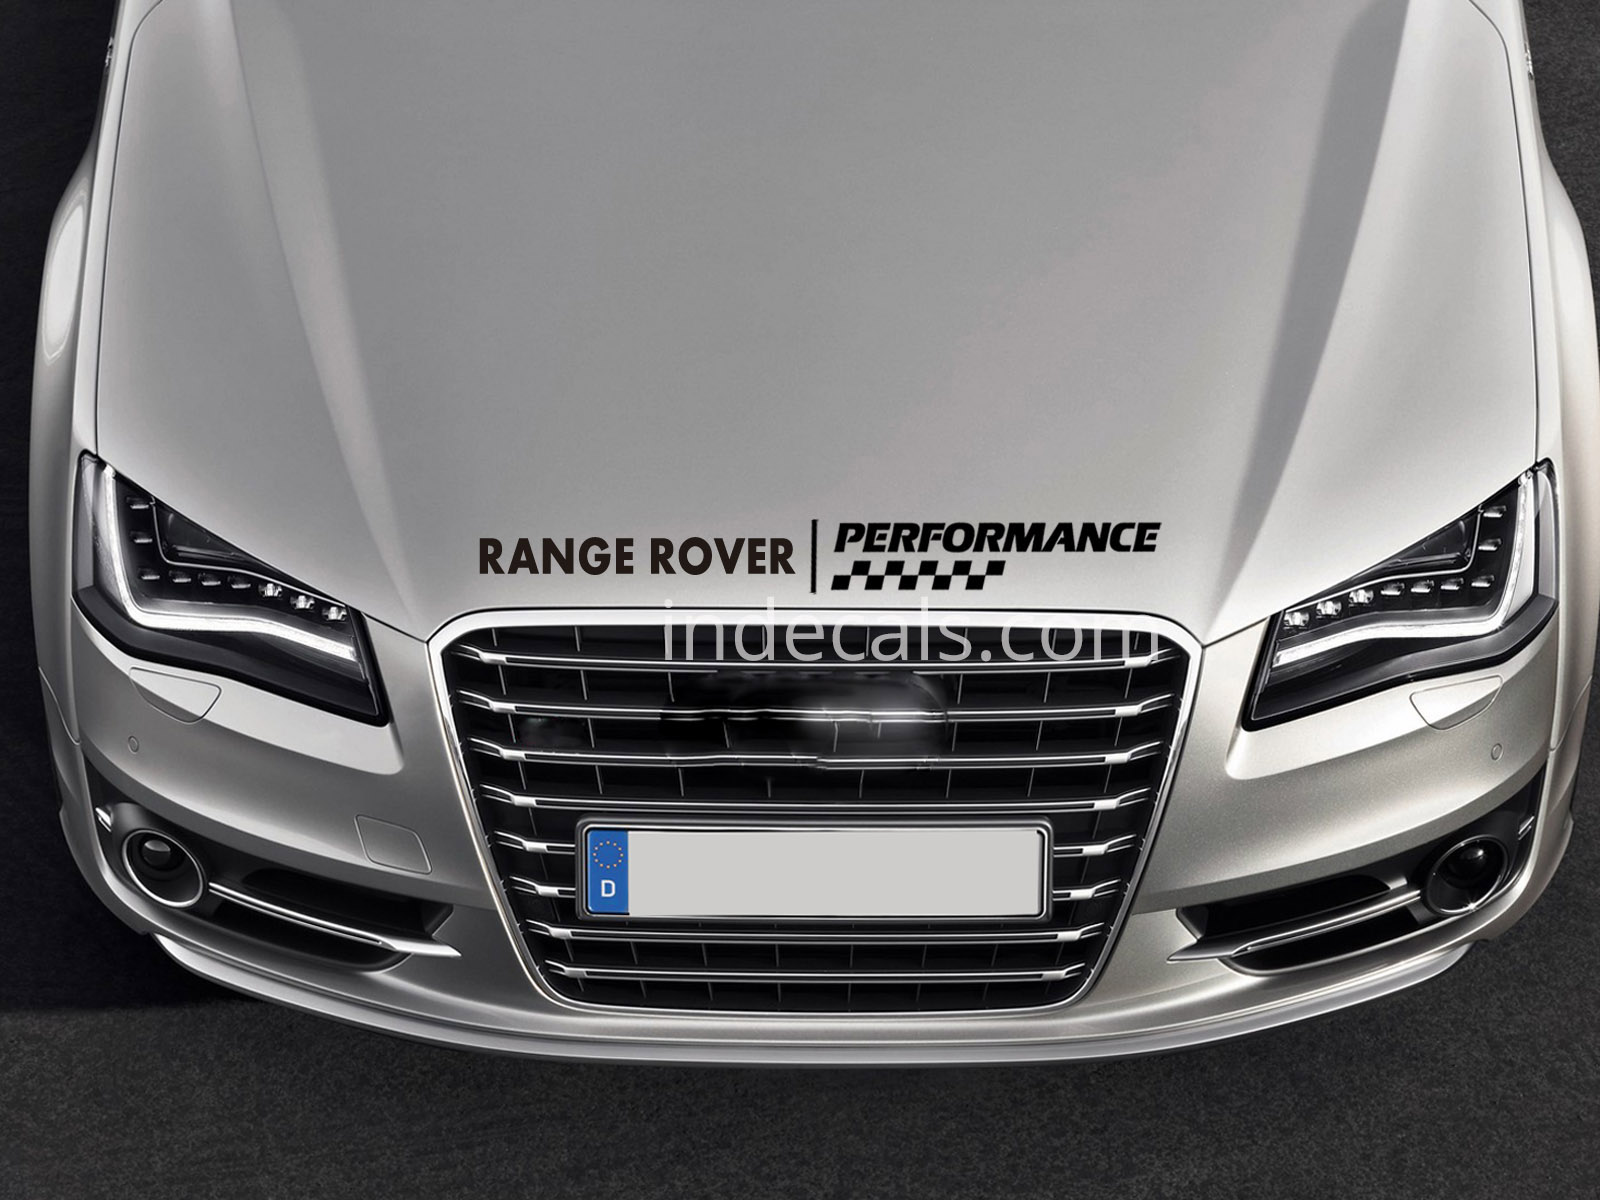 1 x Range Rover Performance Sticker for Bonnet - Black